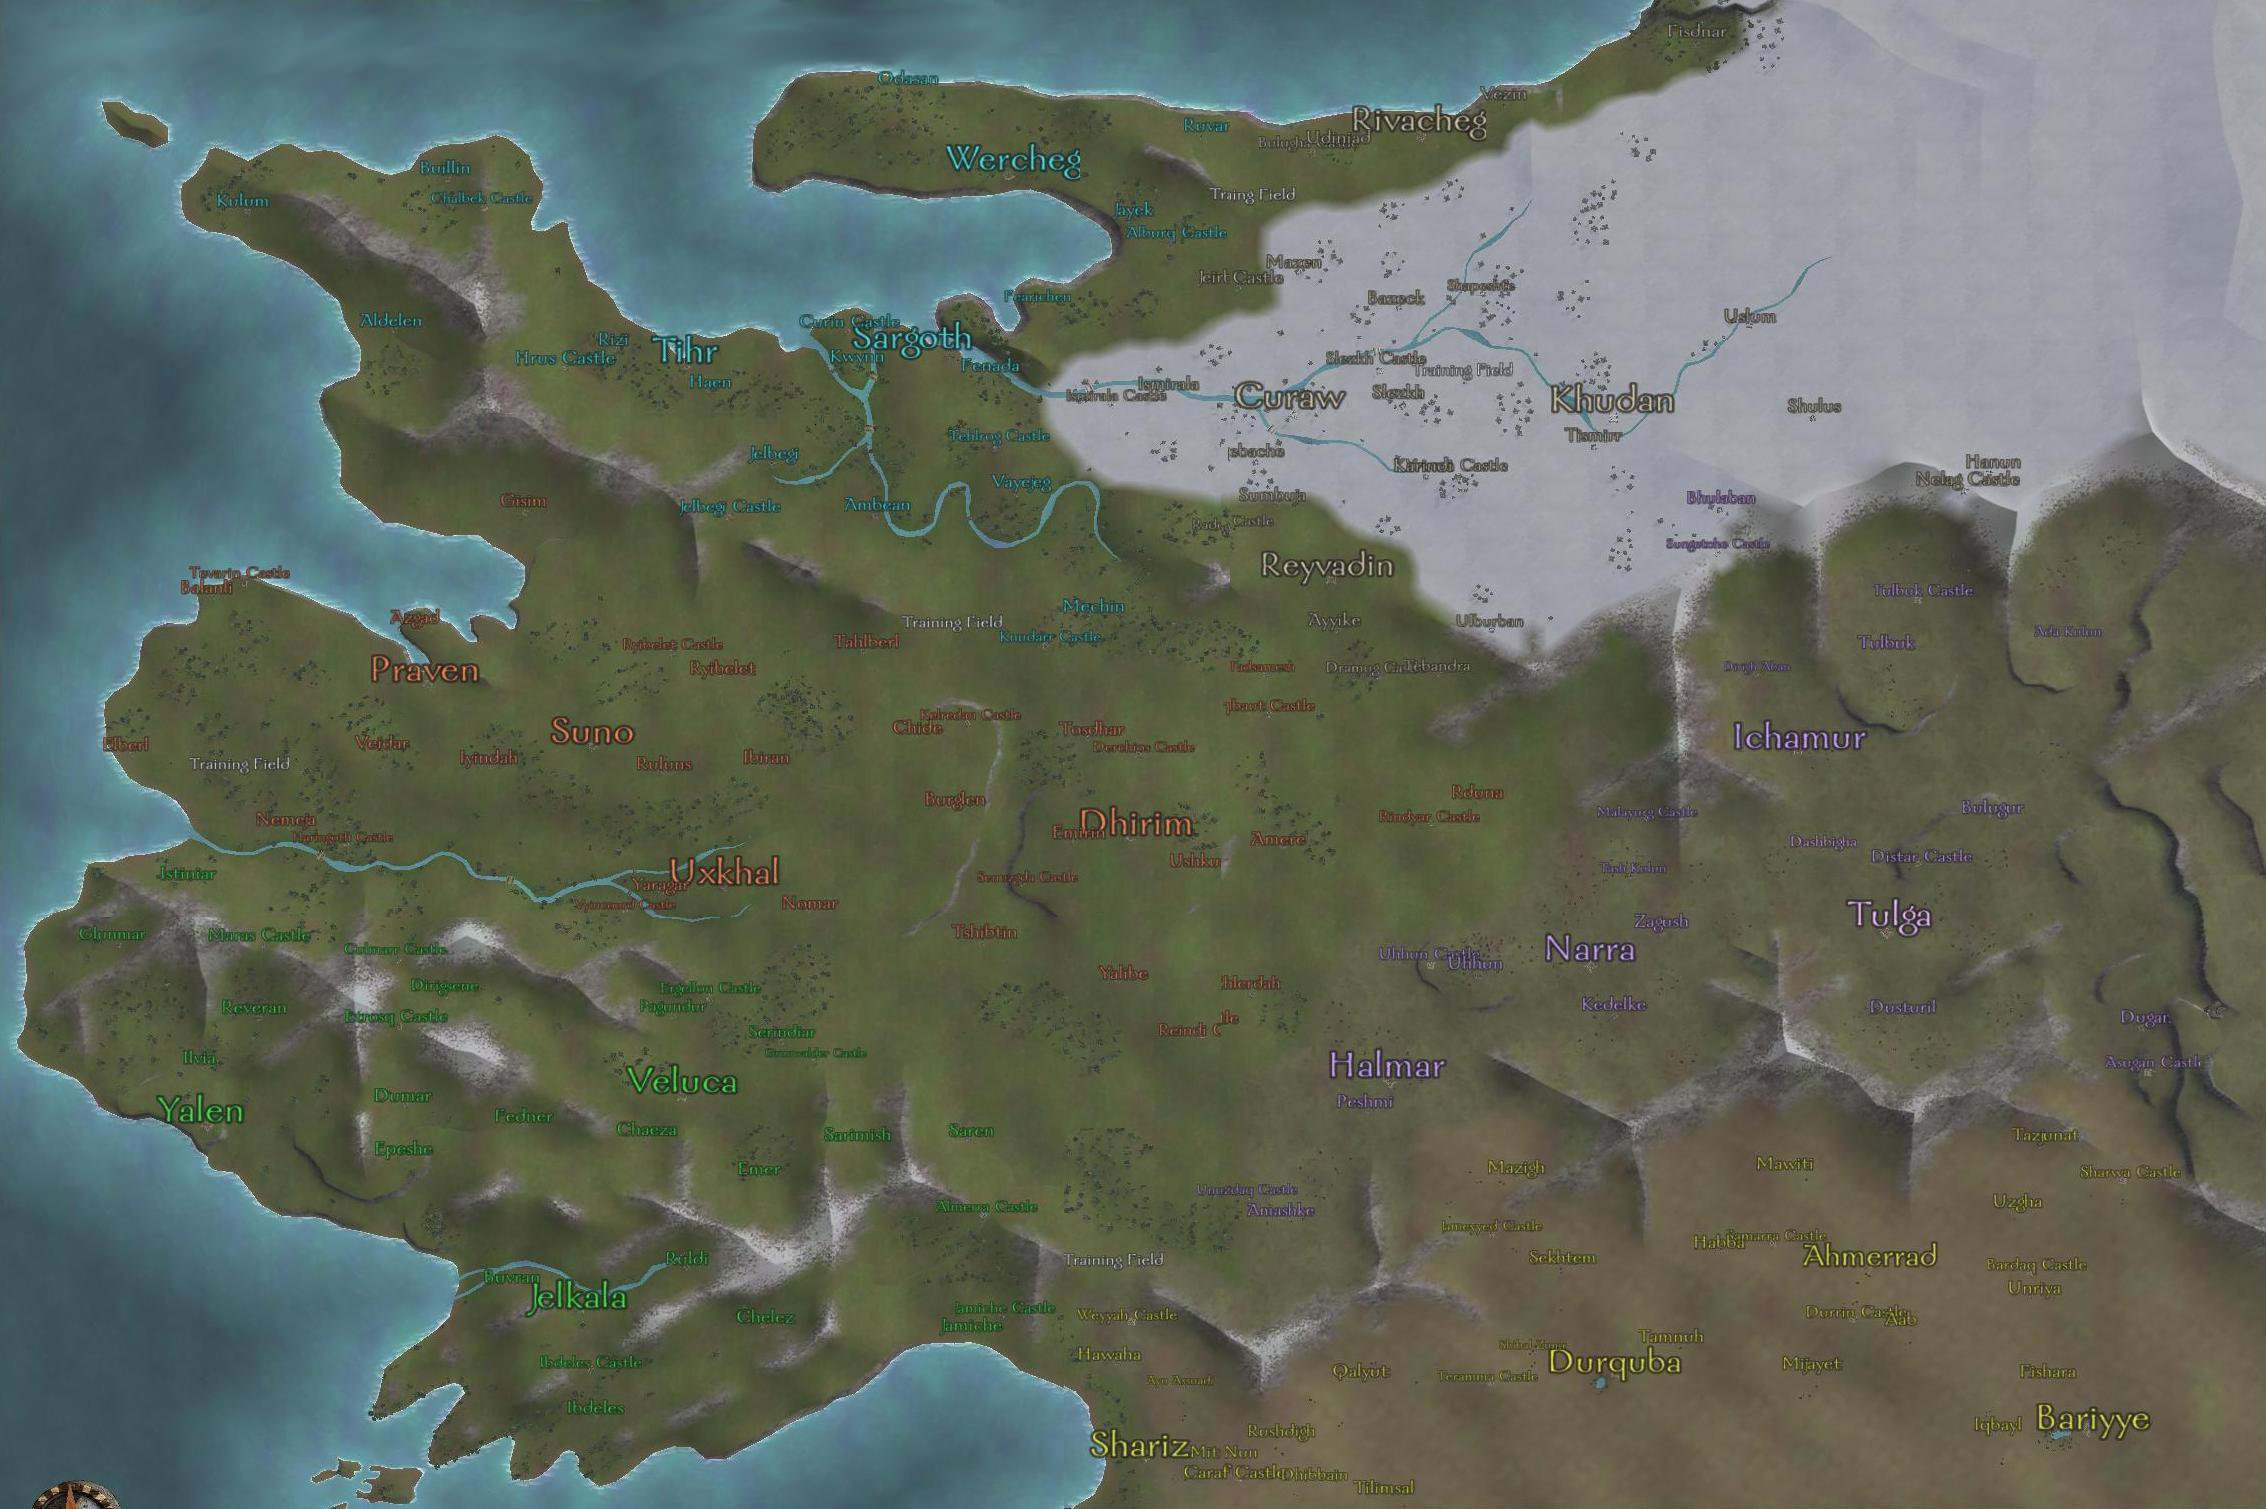 Mountblade warbandmaps strategywiki the video game walkthrough the complete world map view or download the full size version gumiabroncs Choice Image